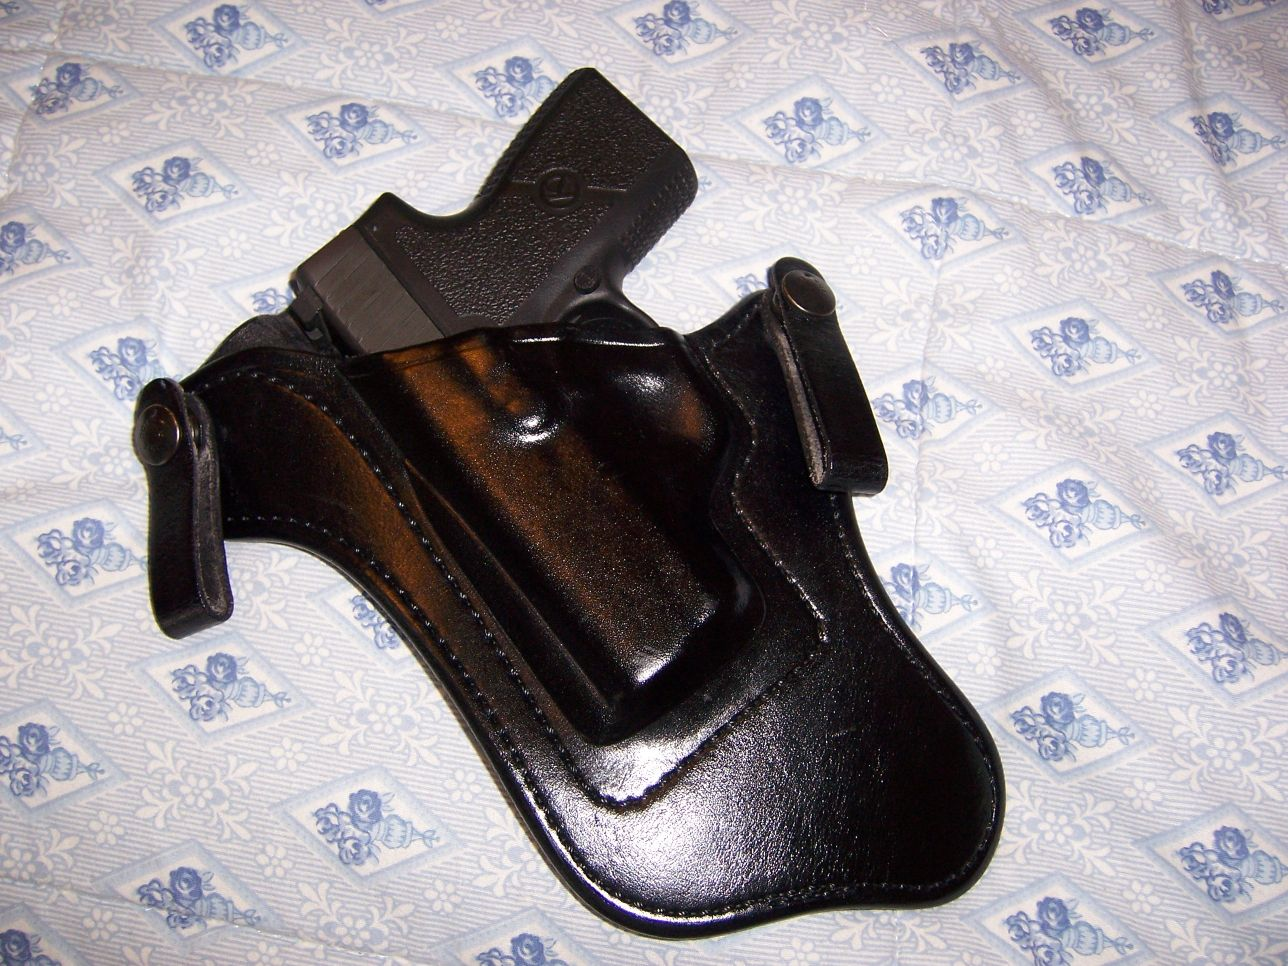 Let's See Your Pic's - How You Carry Concealed.-small-2.jpg